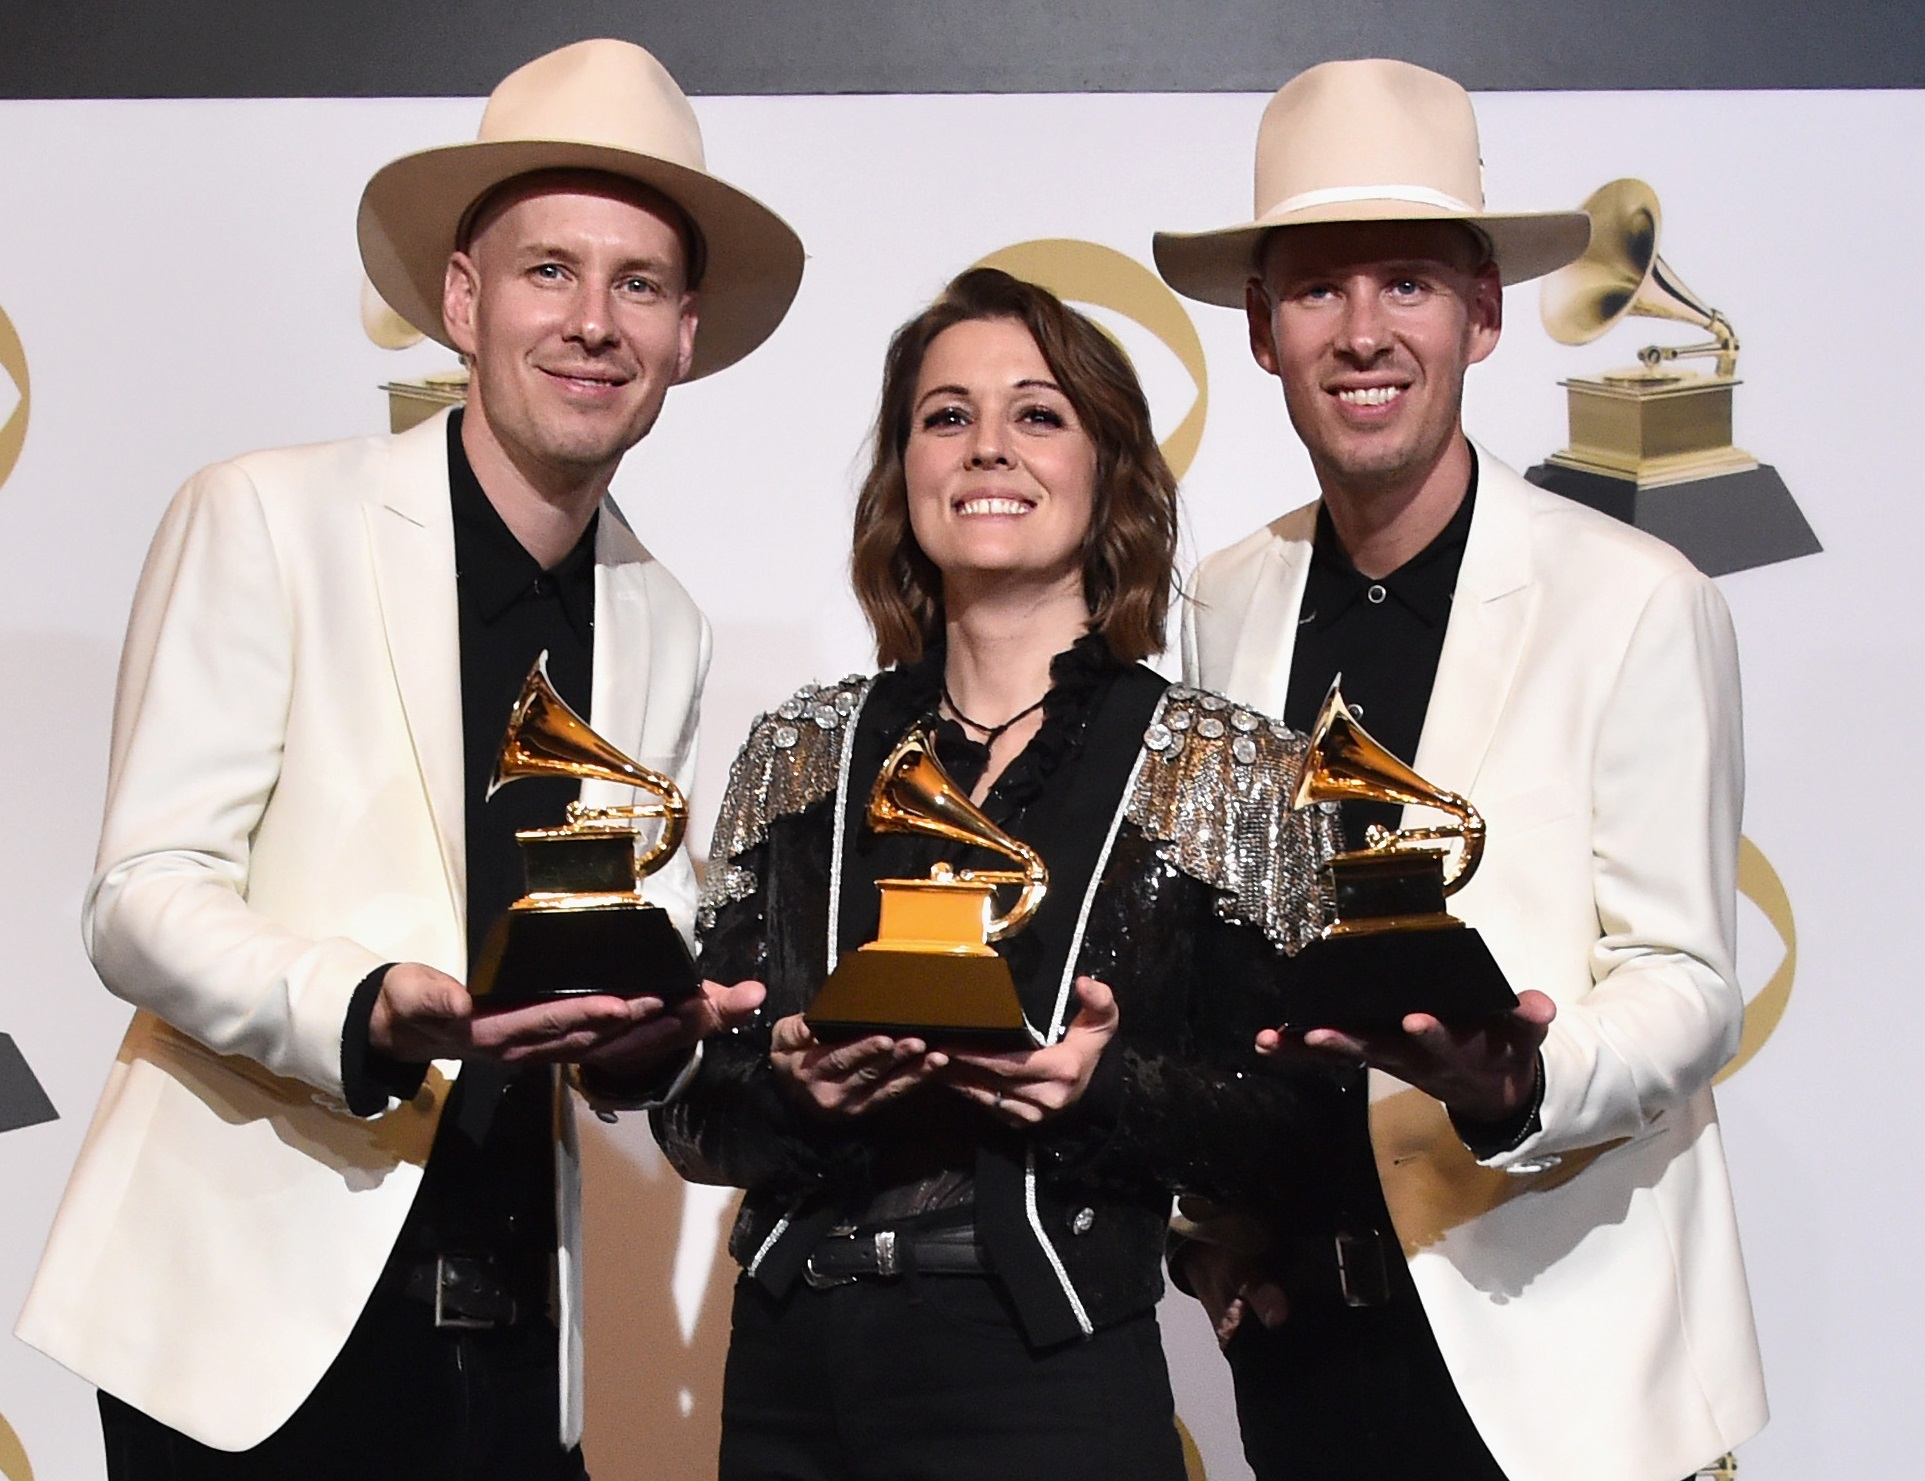 Brandi Carlile Takes Home Three Grammys at the 61st Annual Awards